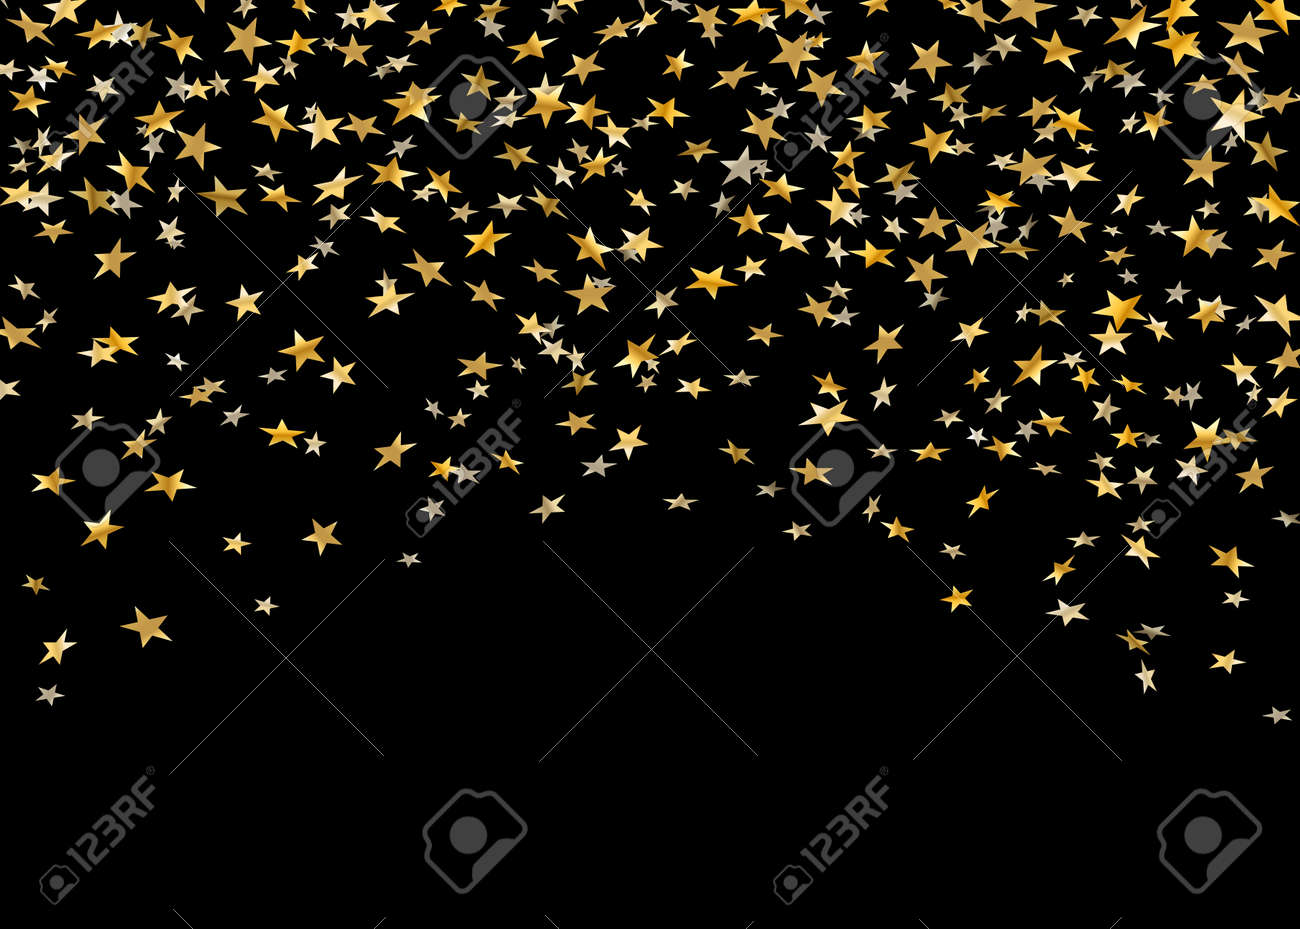 2019 year lifestyle- Gold and Black stars background